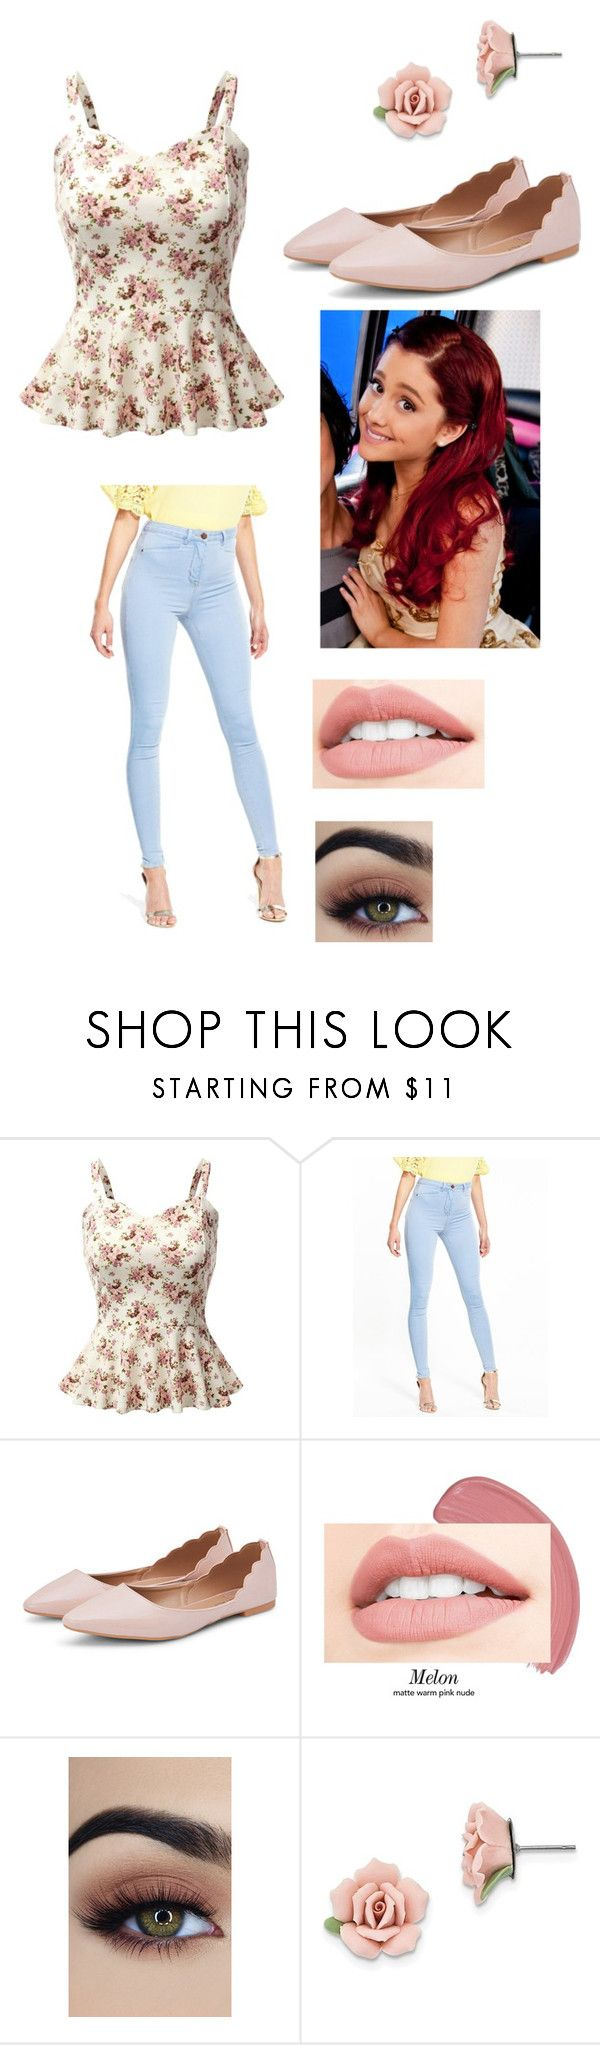 """Cat Valentine"" by daria-cat ❤ liked on Polyvore featuring Doublju and 1928"